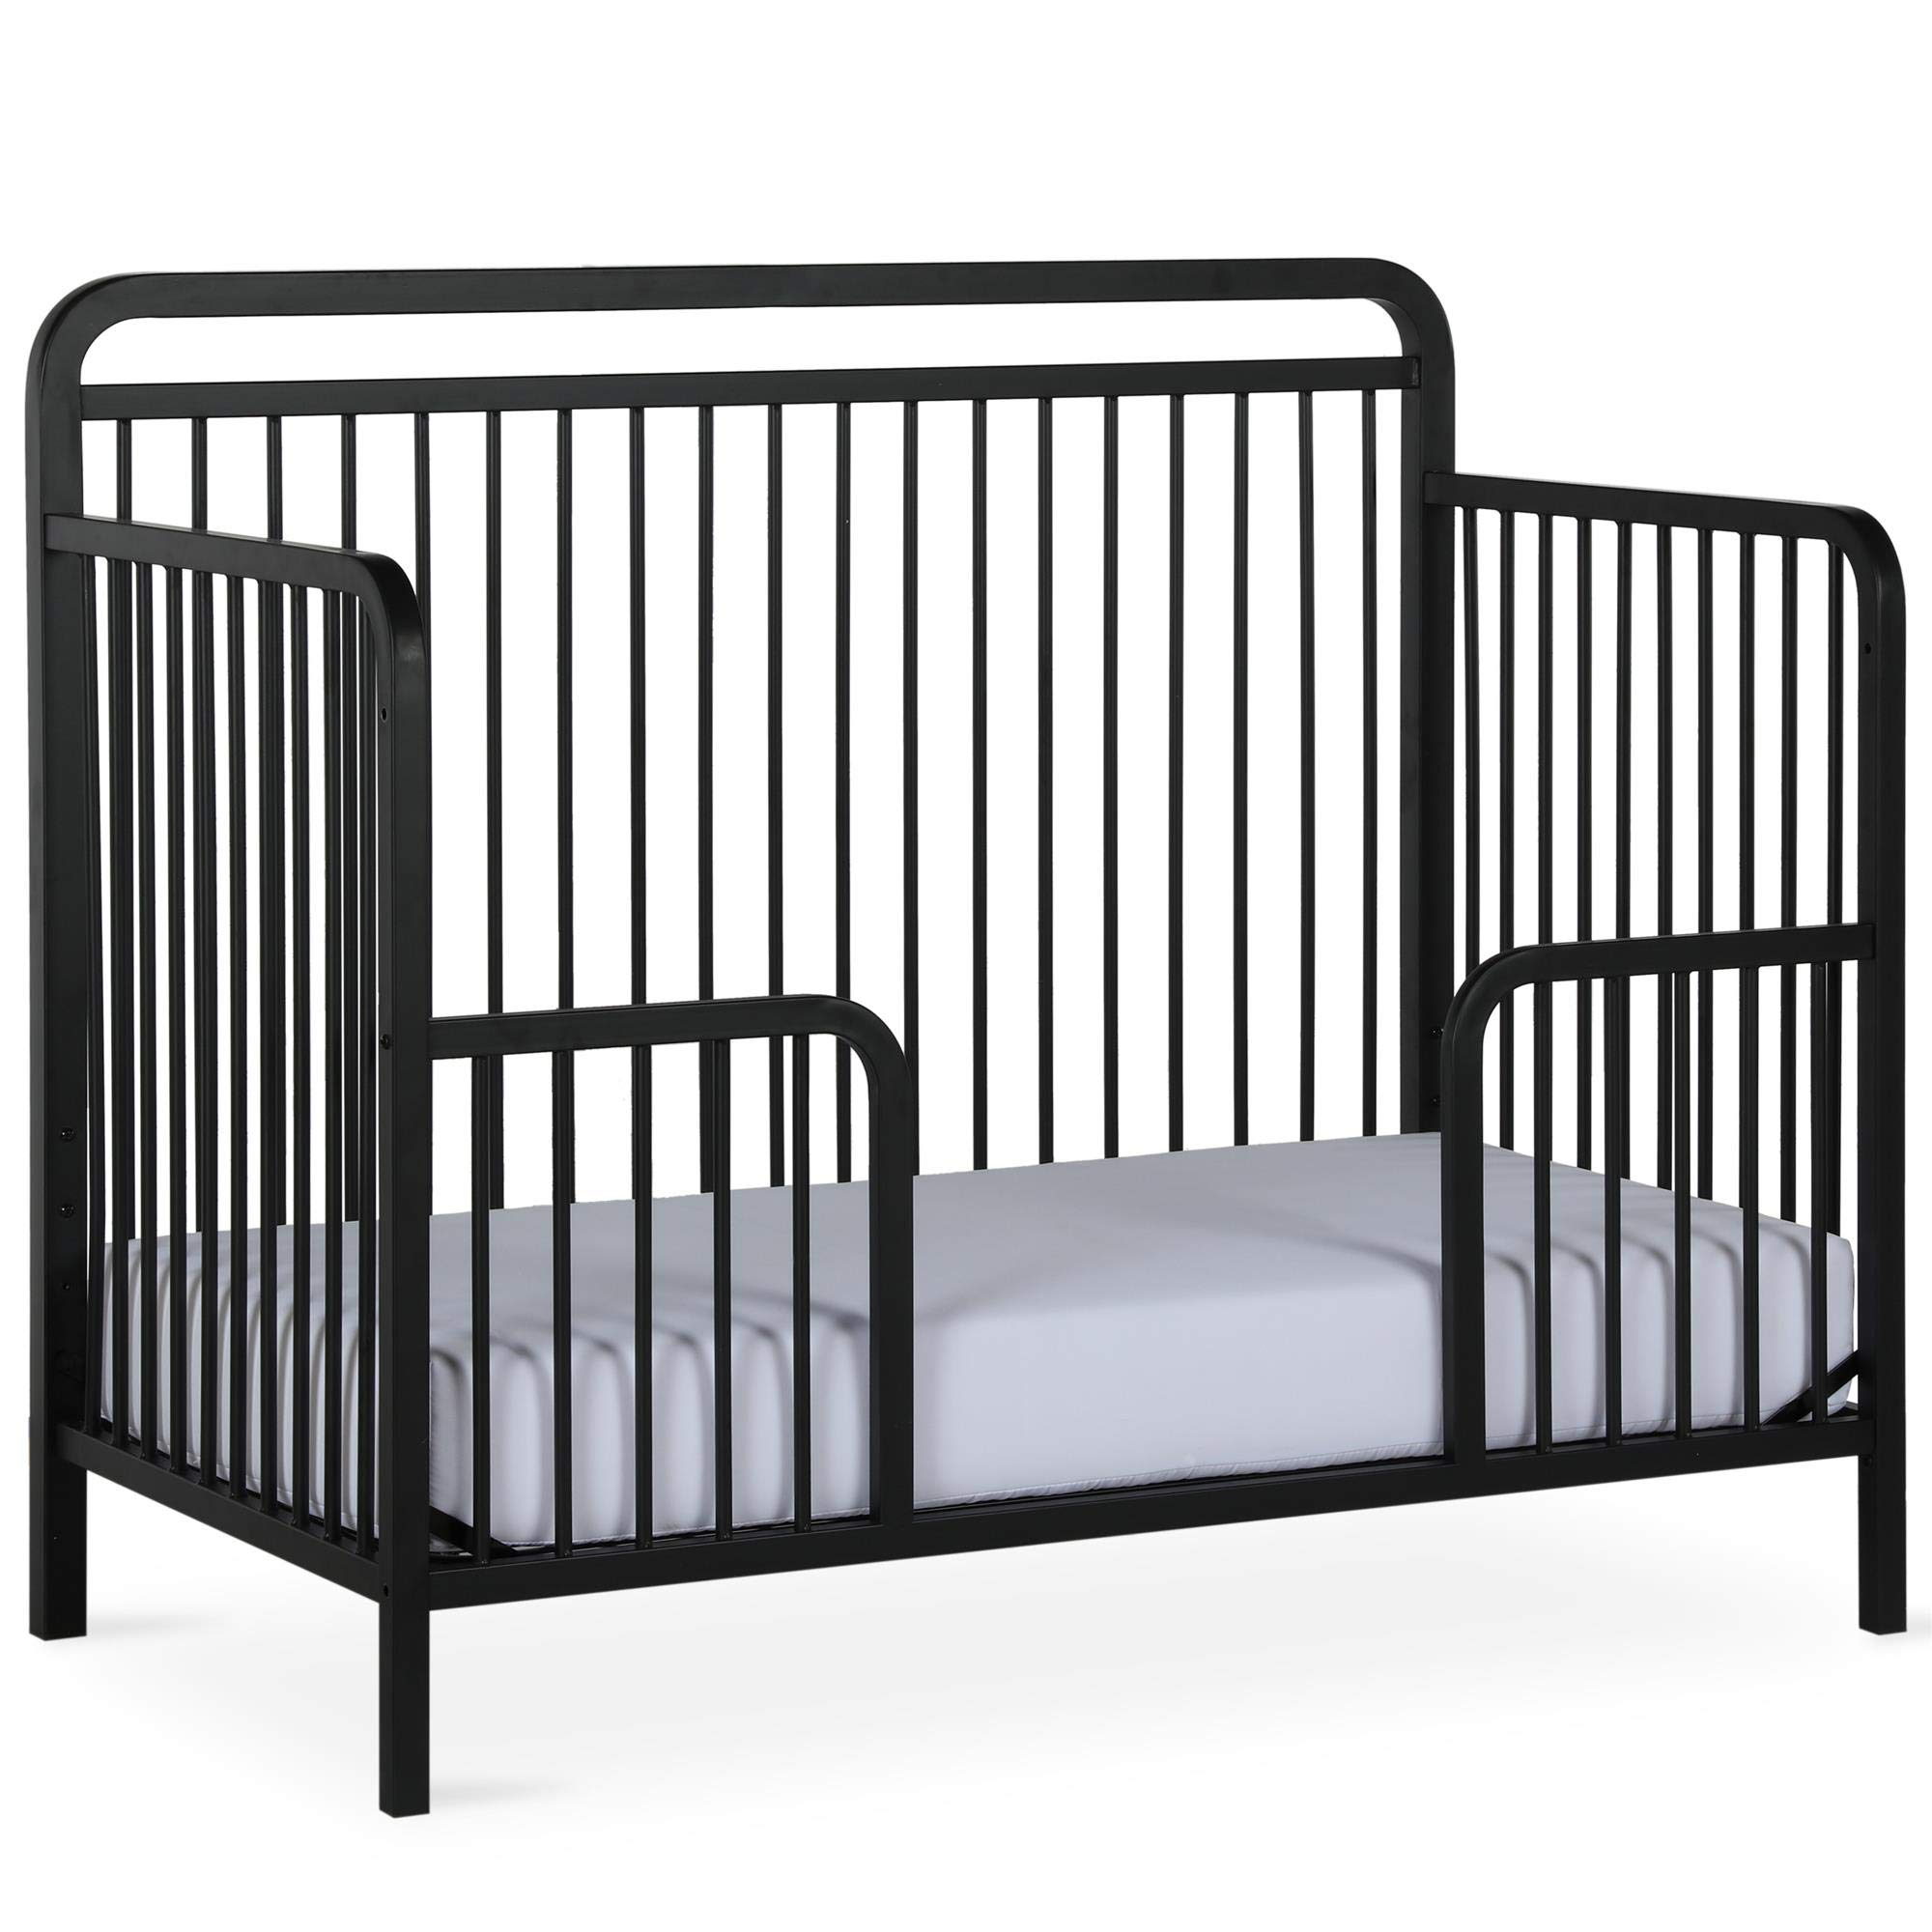 Baby Relax Juniper Metal Toddler Guardrail, Matte Black by Baby Relax